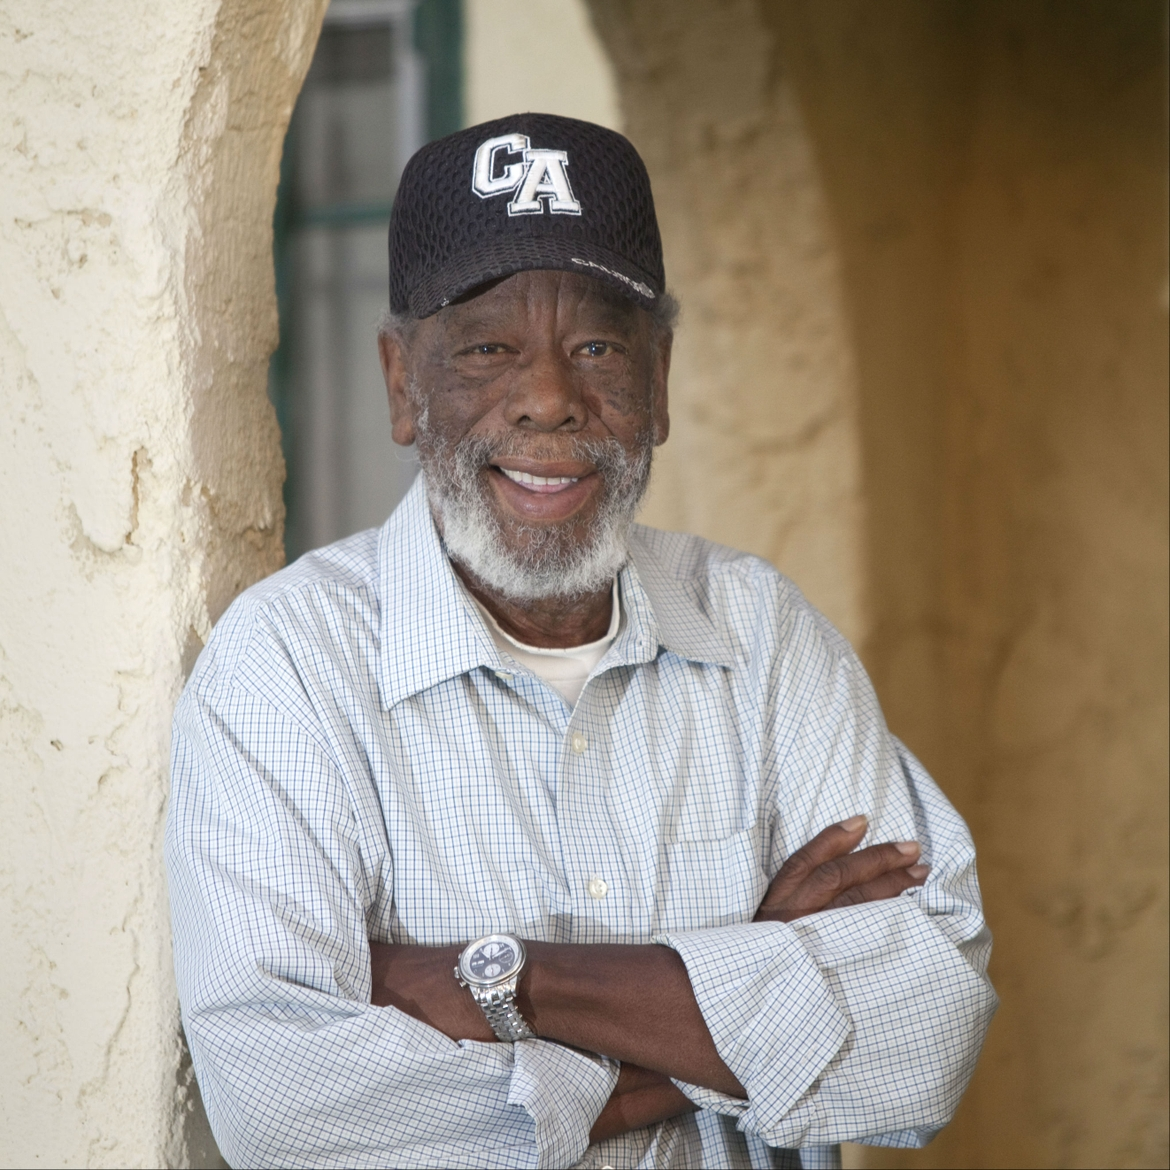 Core 4 Stories: How Home Care Helped Willie David Brown Have a Fuller, Healthier Life